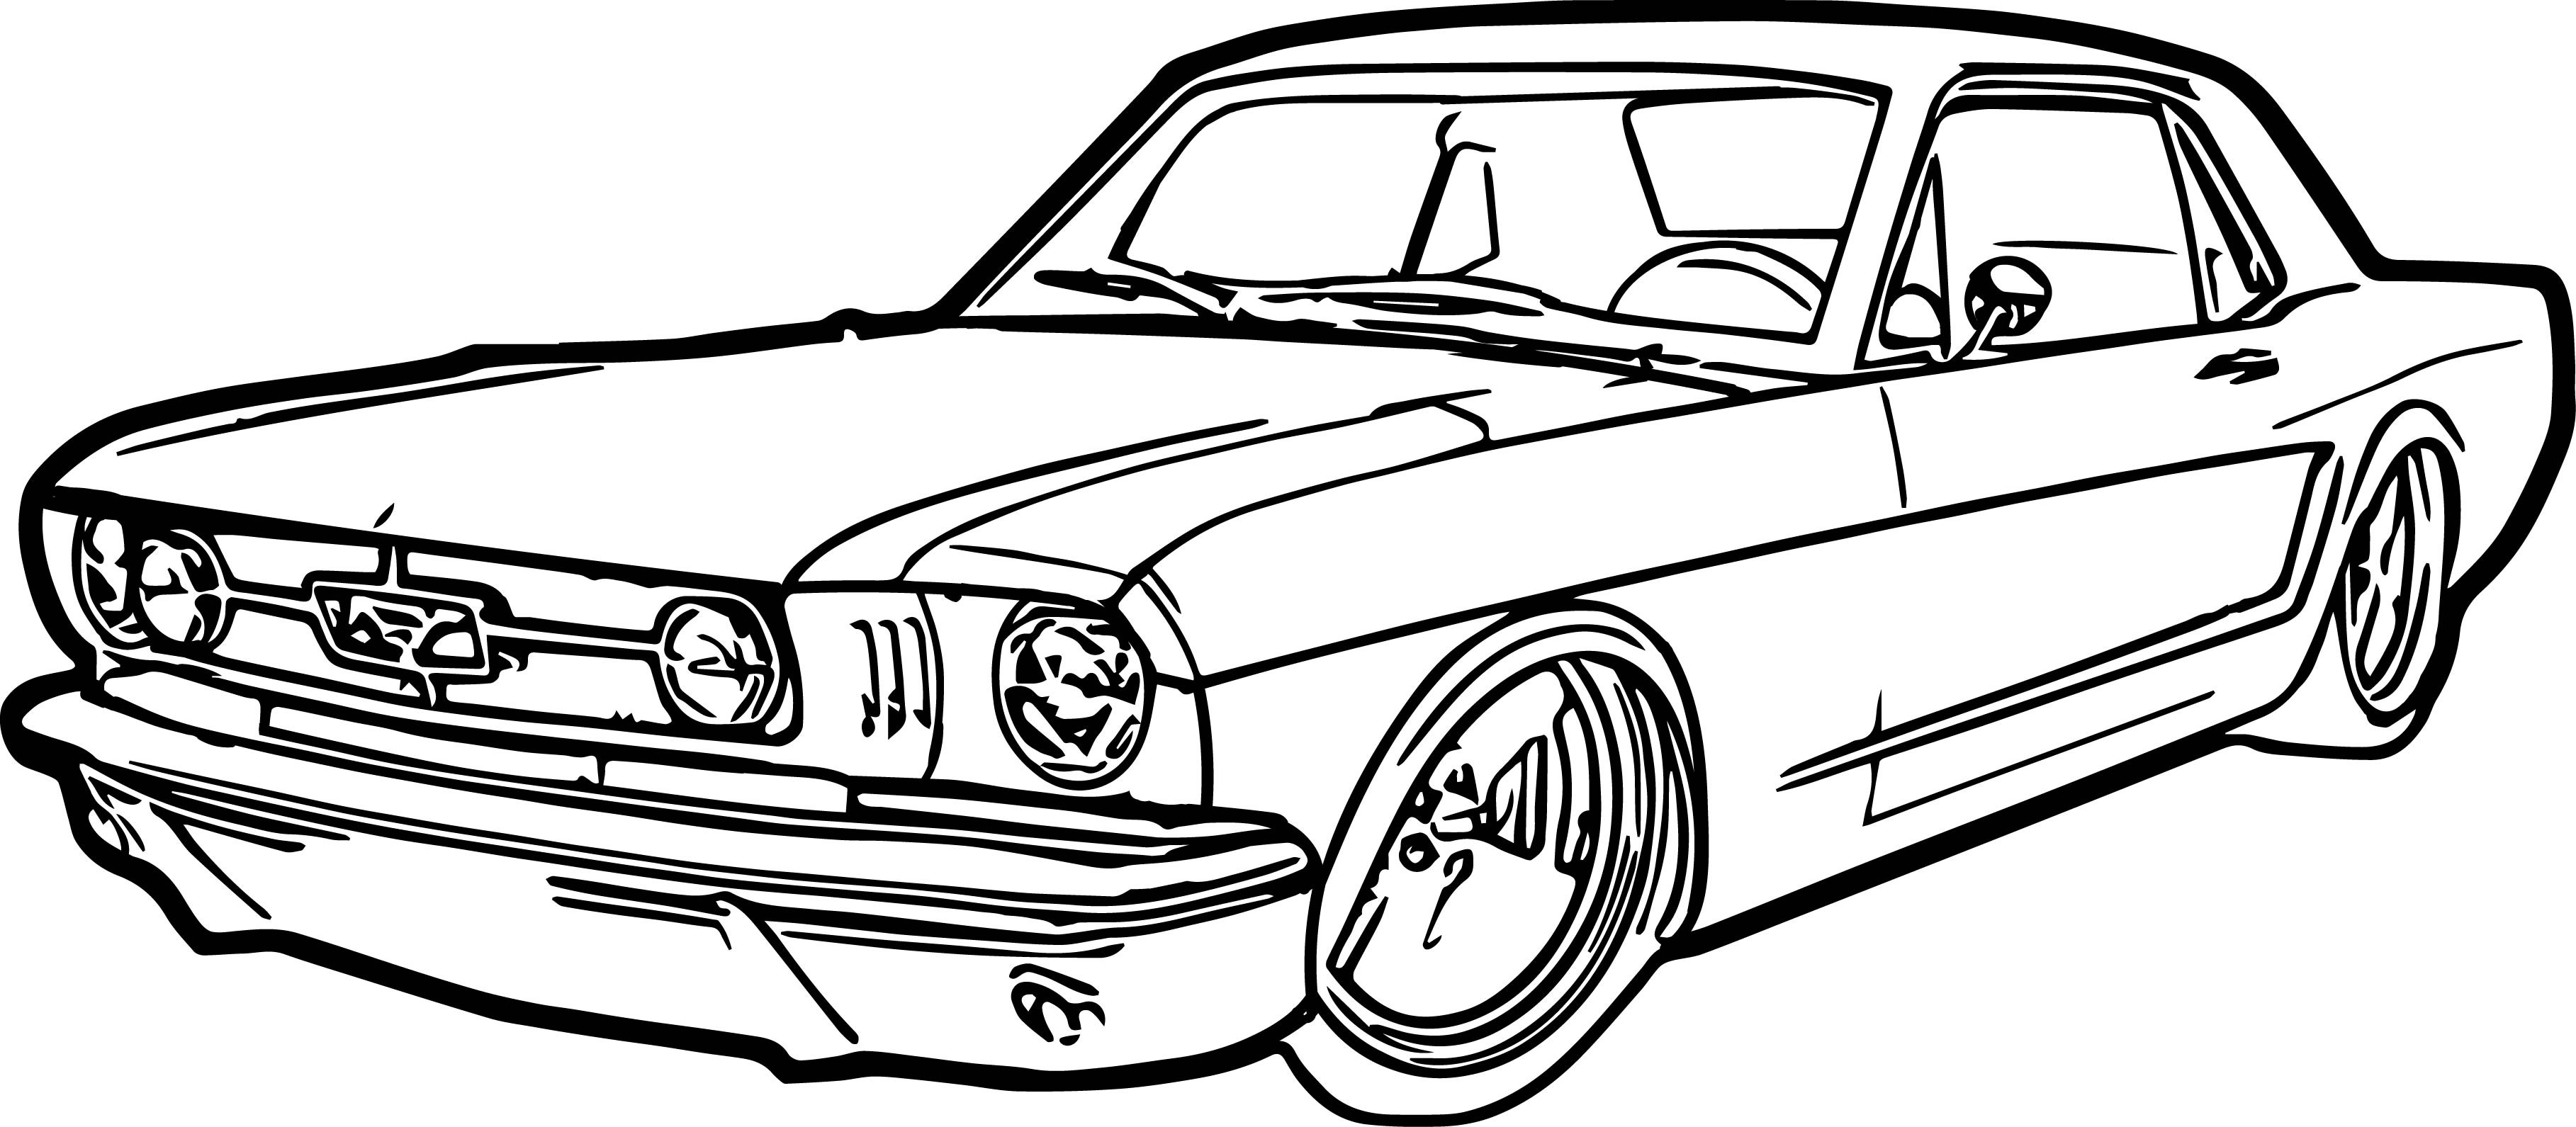 3635x1591 Cool Car Coloring Page Beautiful Super Car Range Rover Classic